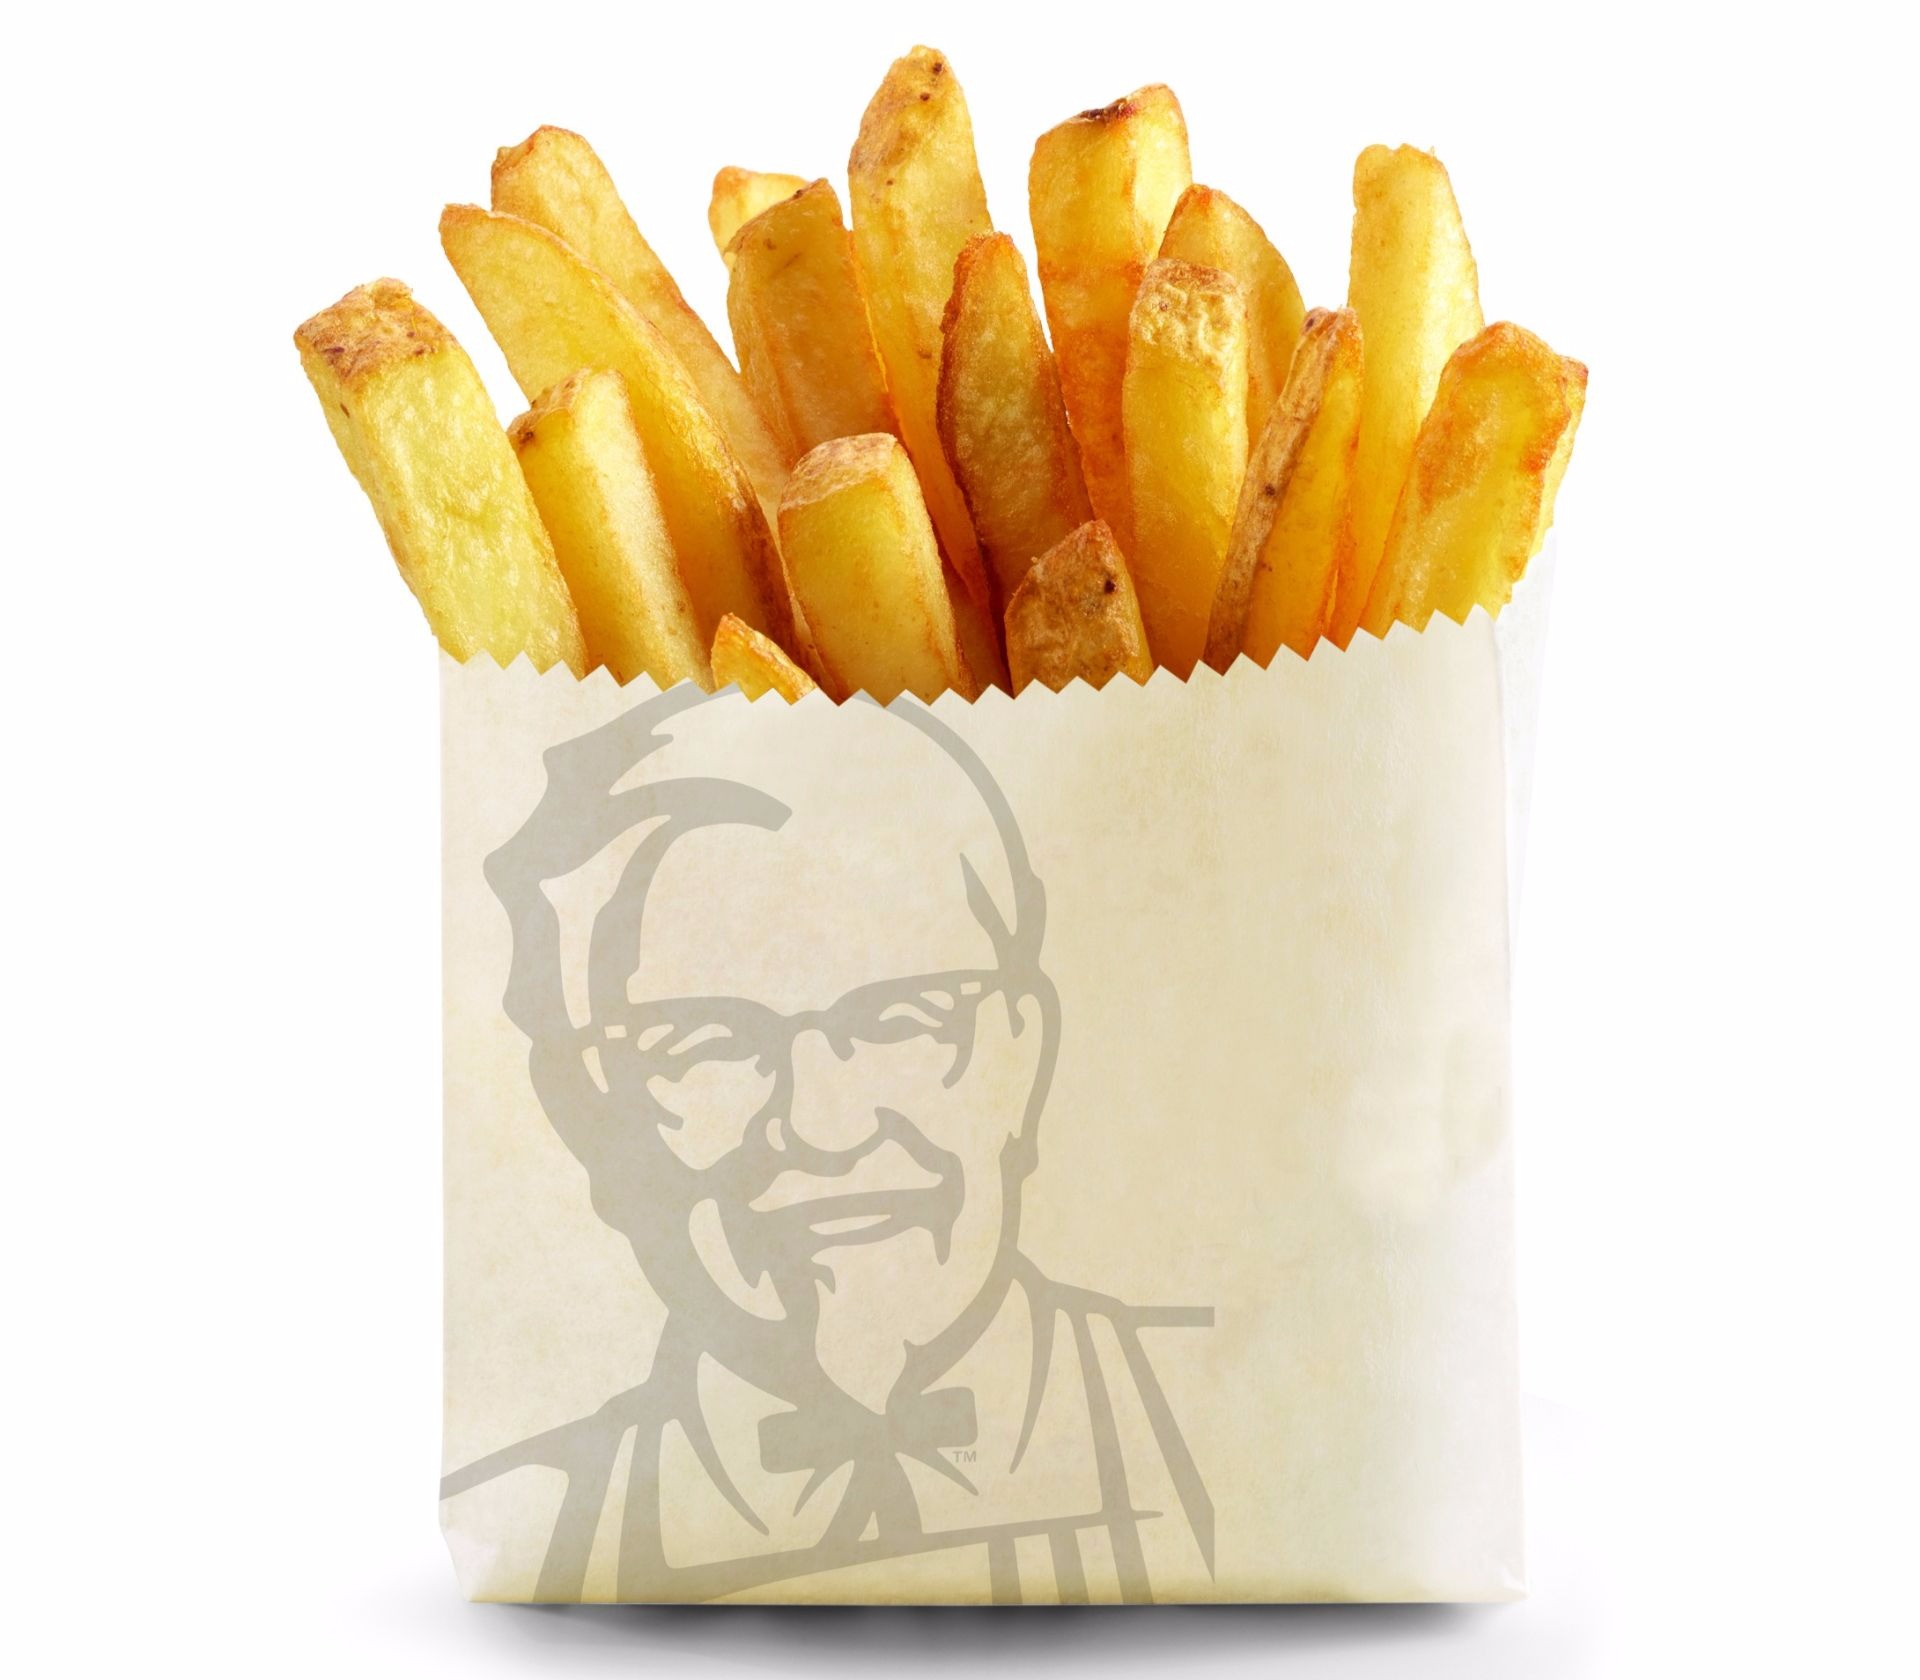 The new KFC fries.